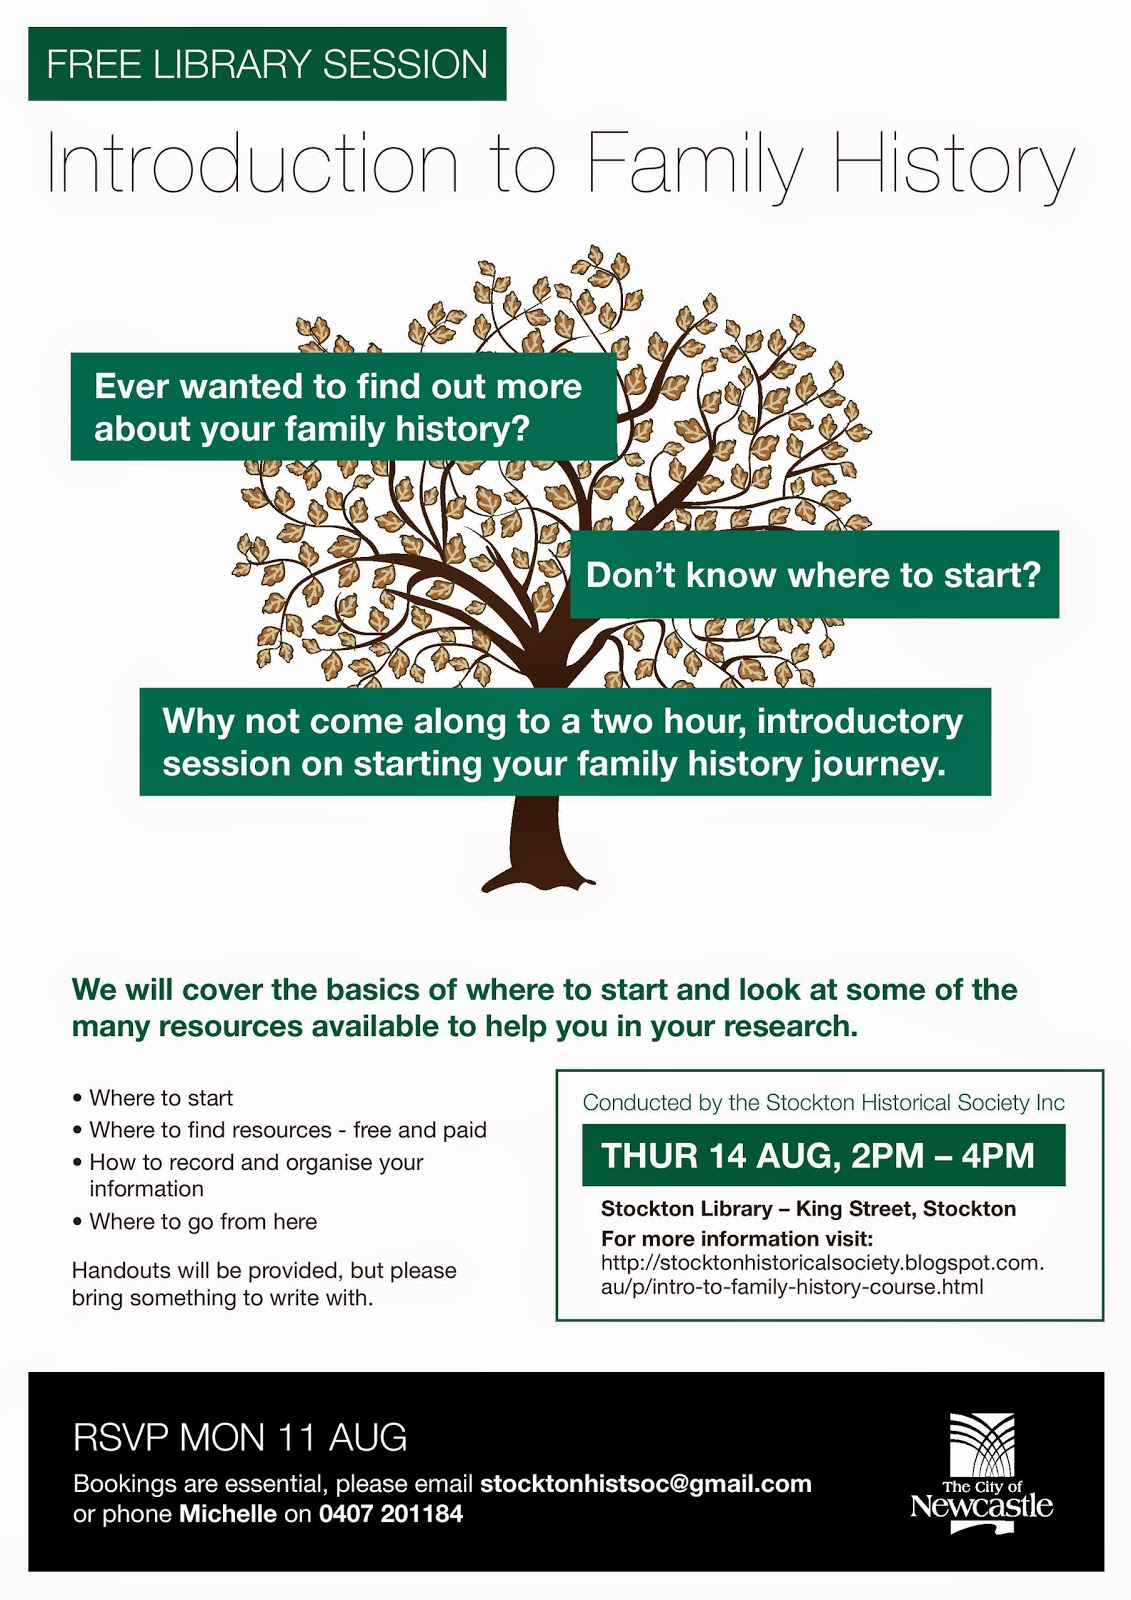 Stockton Historical Society Inc: Free Intro to Family History Course ...